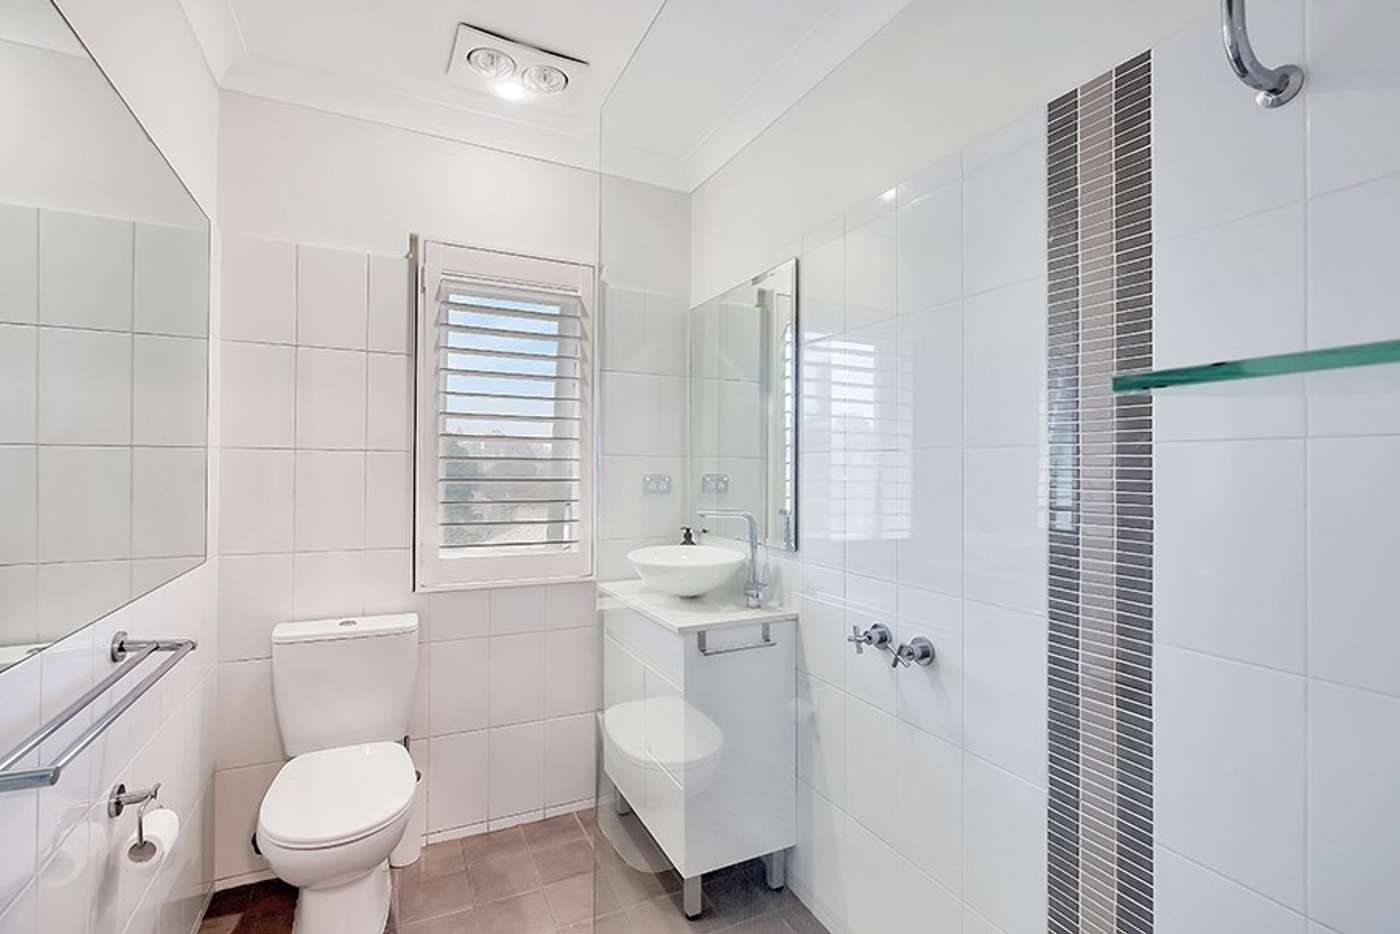 Fifth view of Homely apartment listing, 3/13 Montpelier Street, Neutral Bay NSW 2089